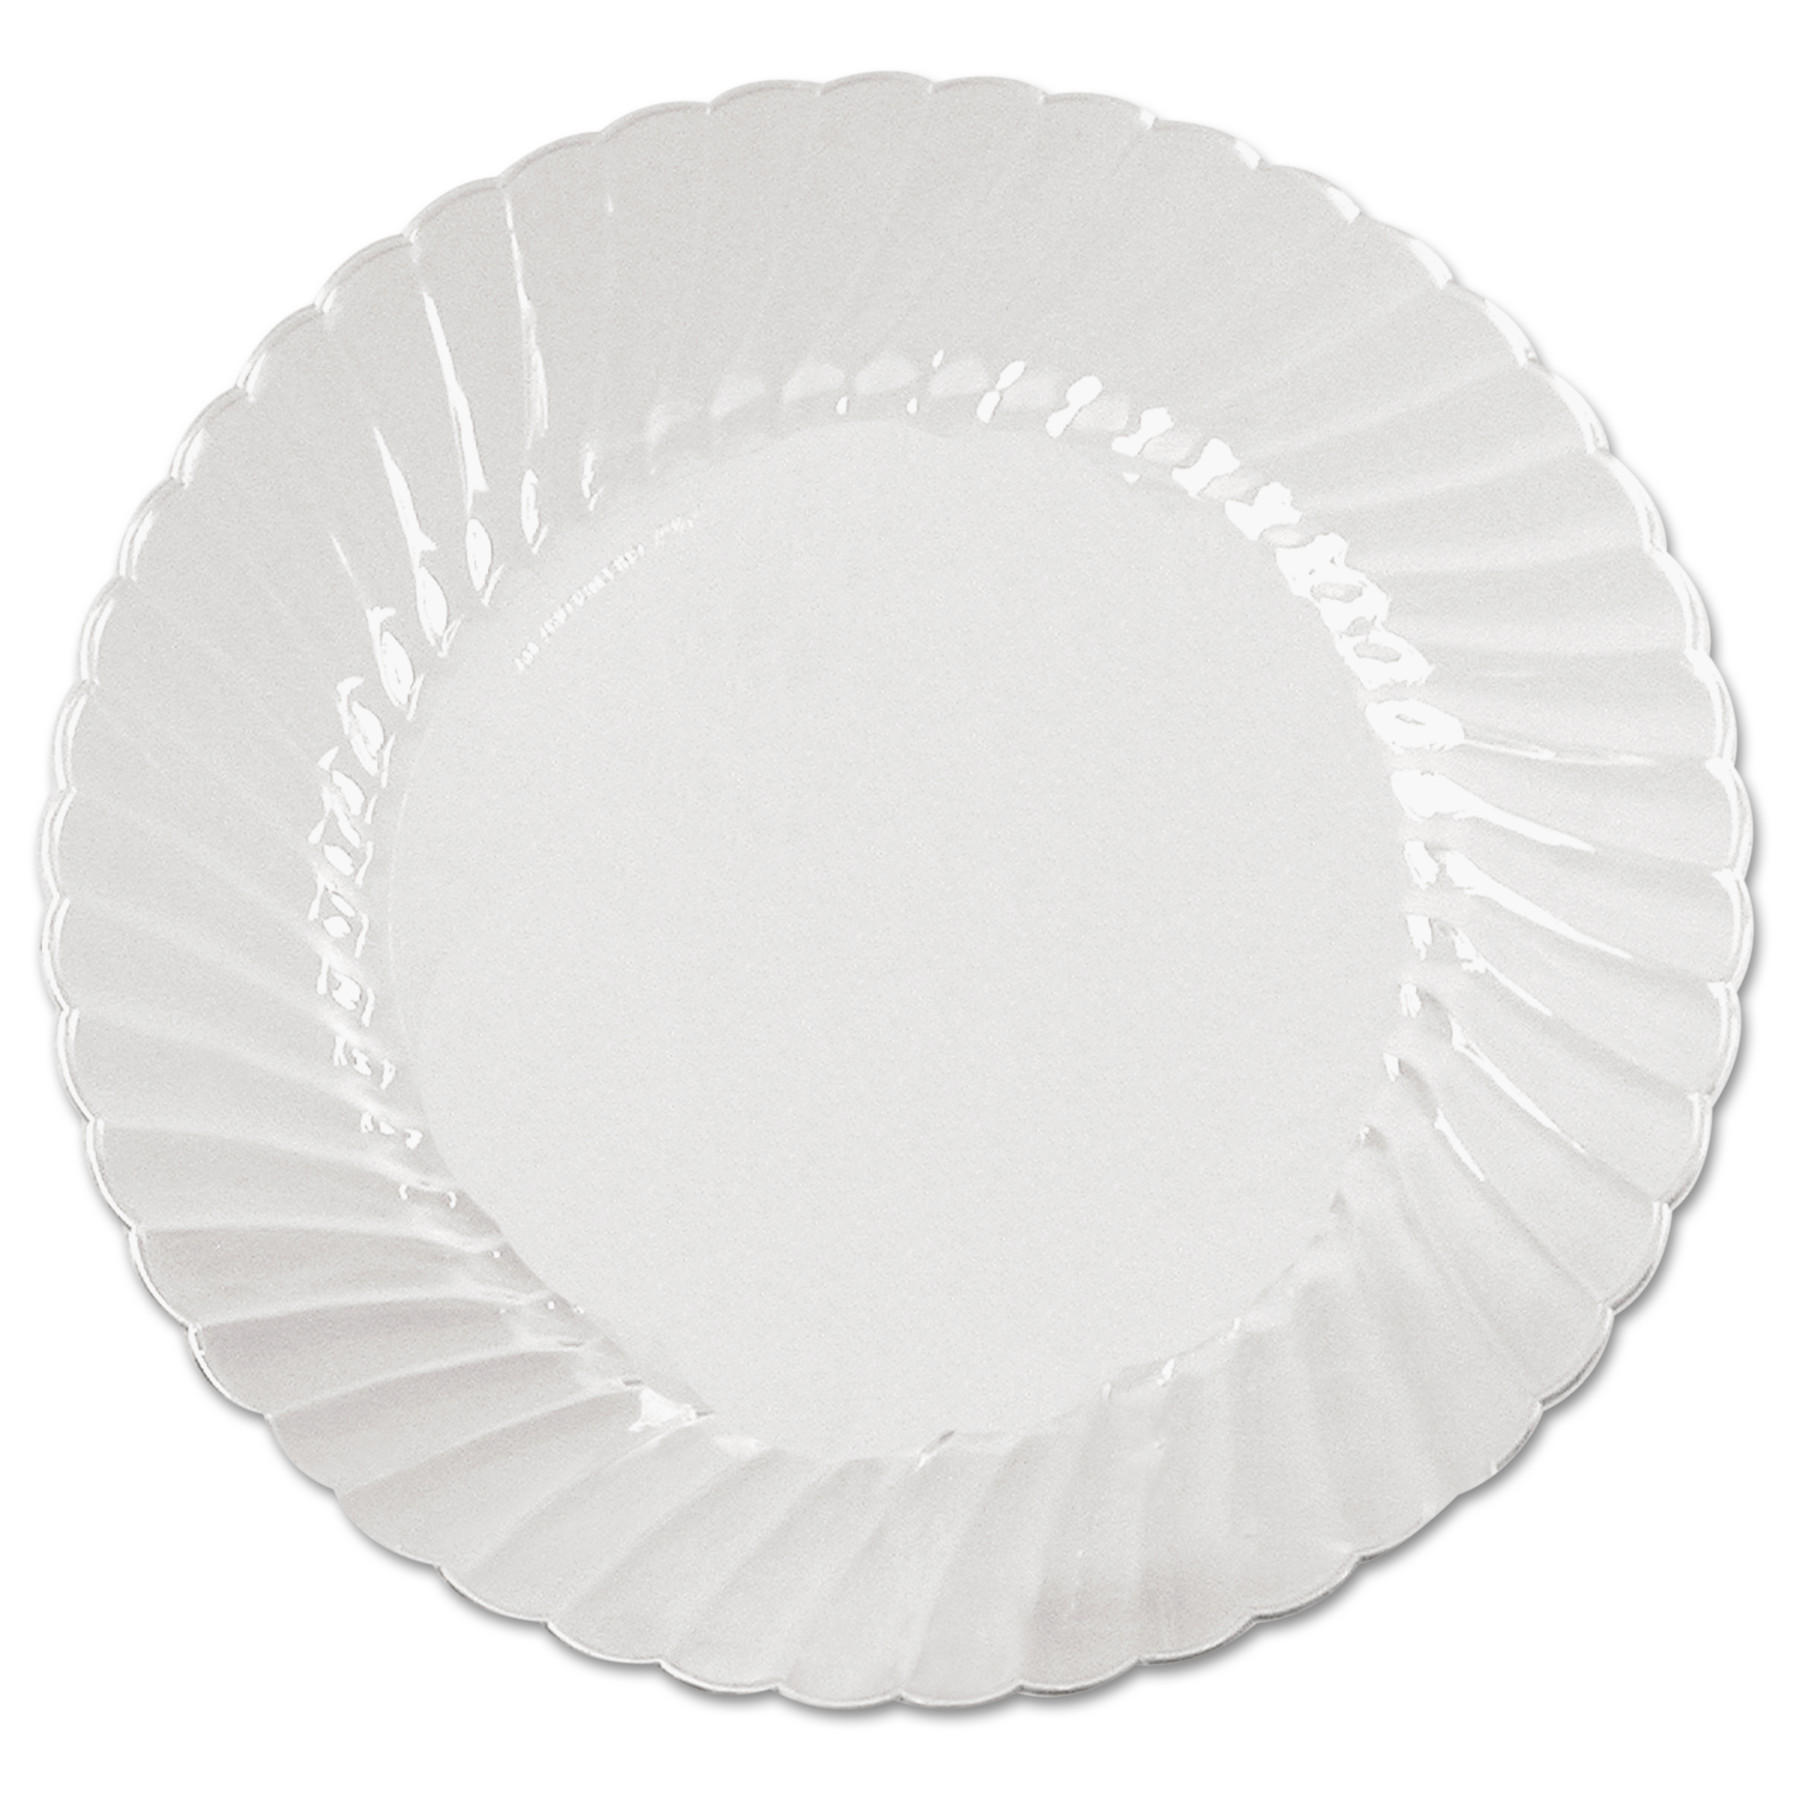 Clear Plastic Plates 10 count (Pack of 18  sc 1 st  Walmart & WNA Classicware 6 in. Clear Plastic Plates 10 count (Pack of 18 ...